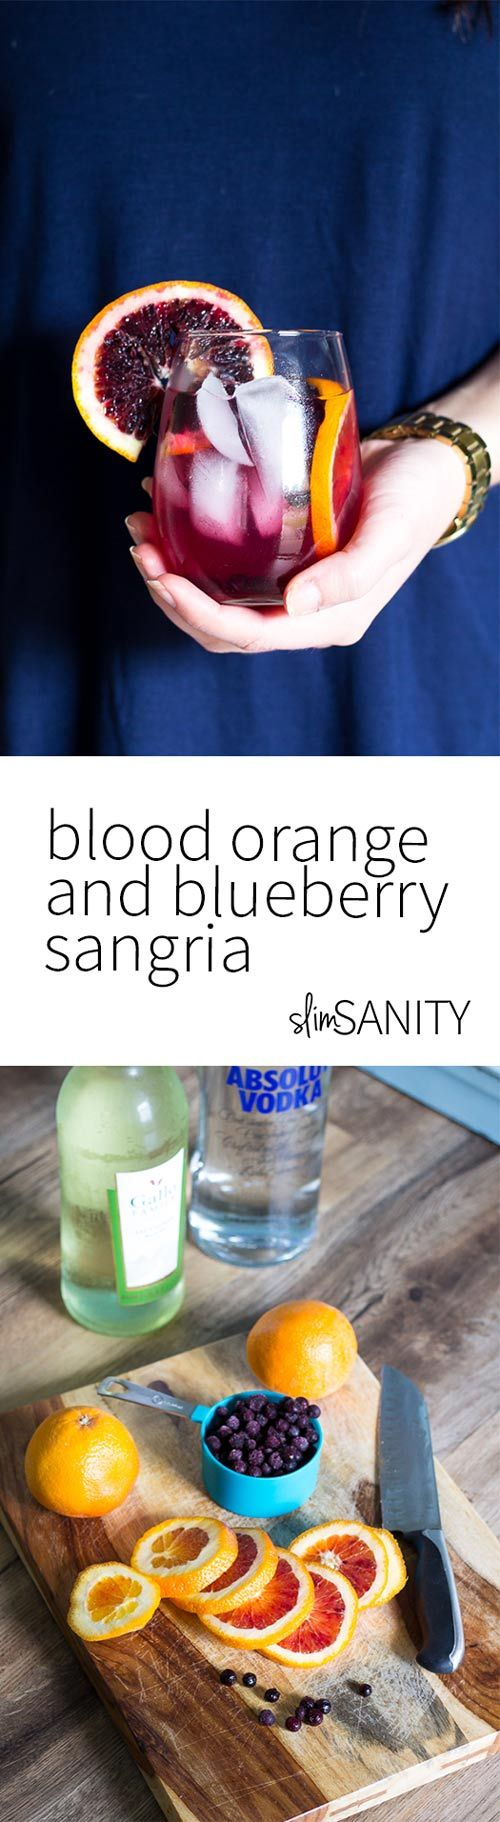 Blood orange and blueberry sangria is a simple party drink made with fruit, sauvignon blanc, vodka and a little bit of club soda.   slimsanity.com